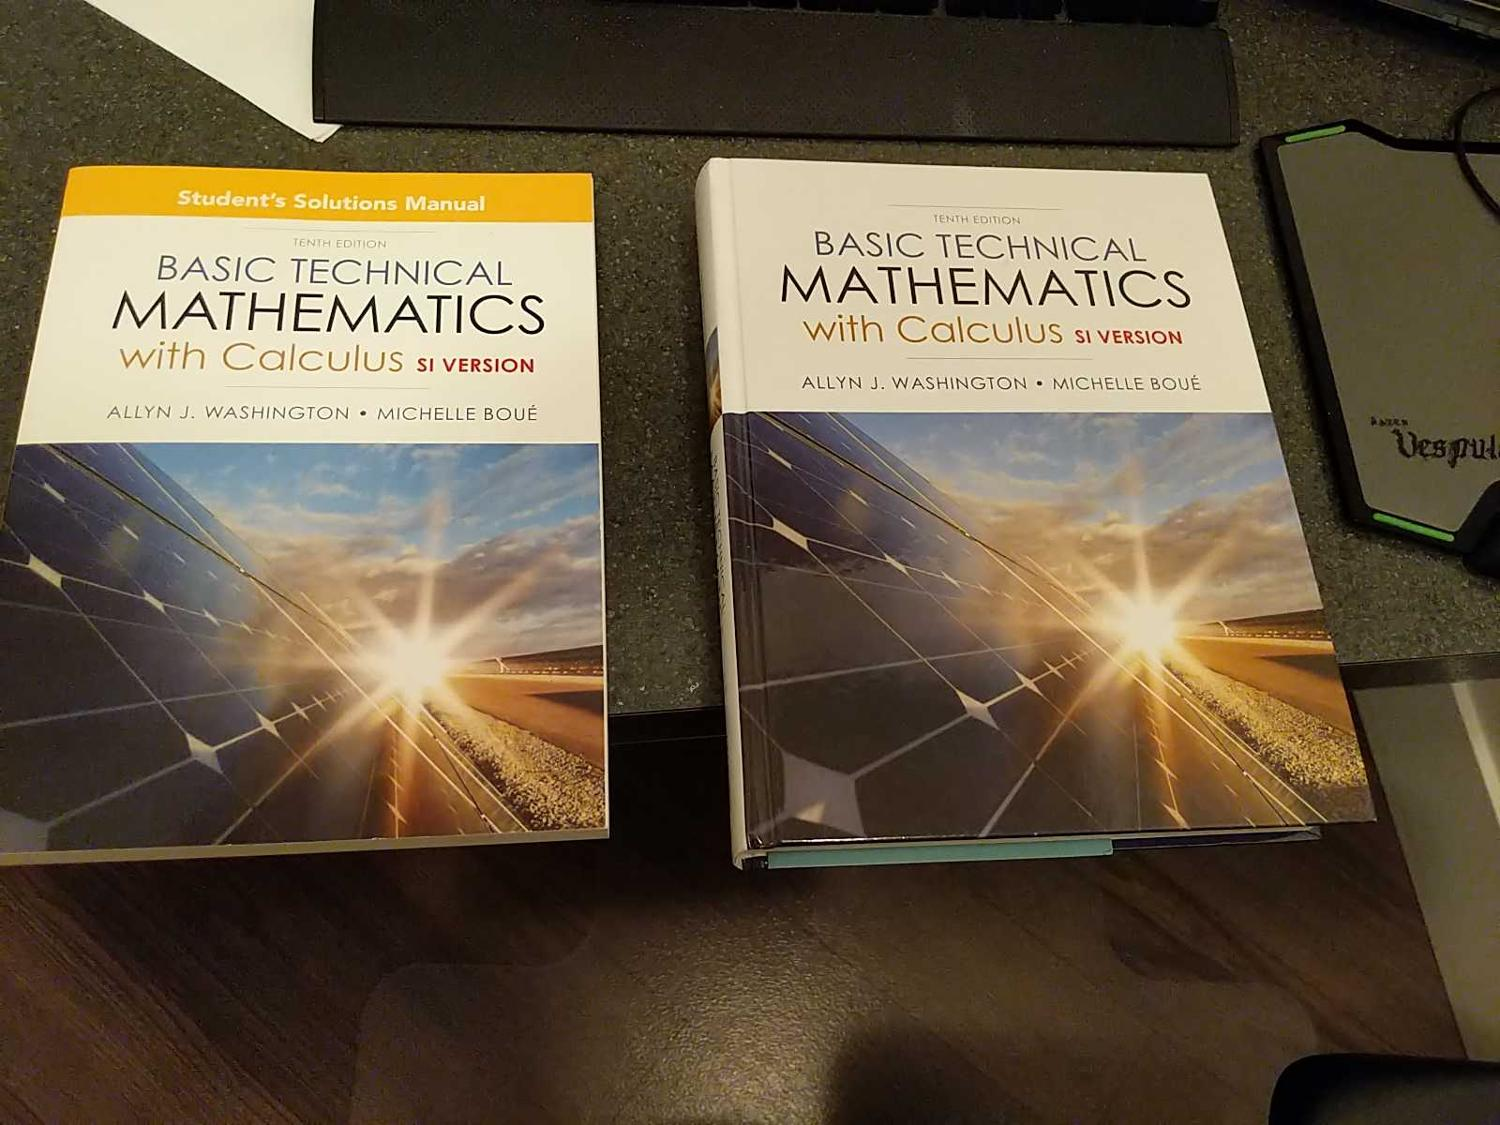 Best Basic Technical Mathematics With Calculus And Student Manual for sale  in Calgary, Alberta for 2019